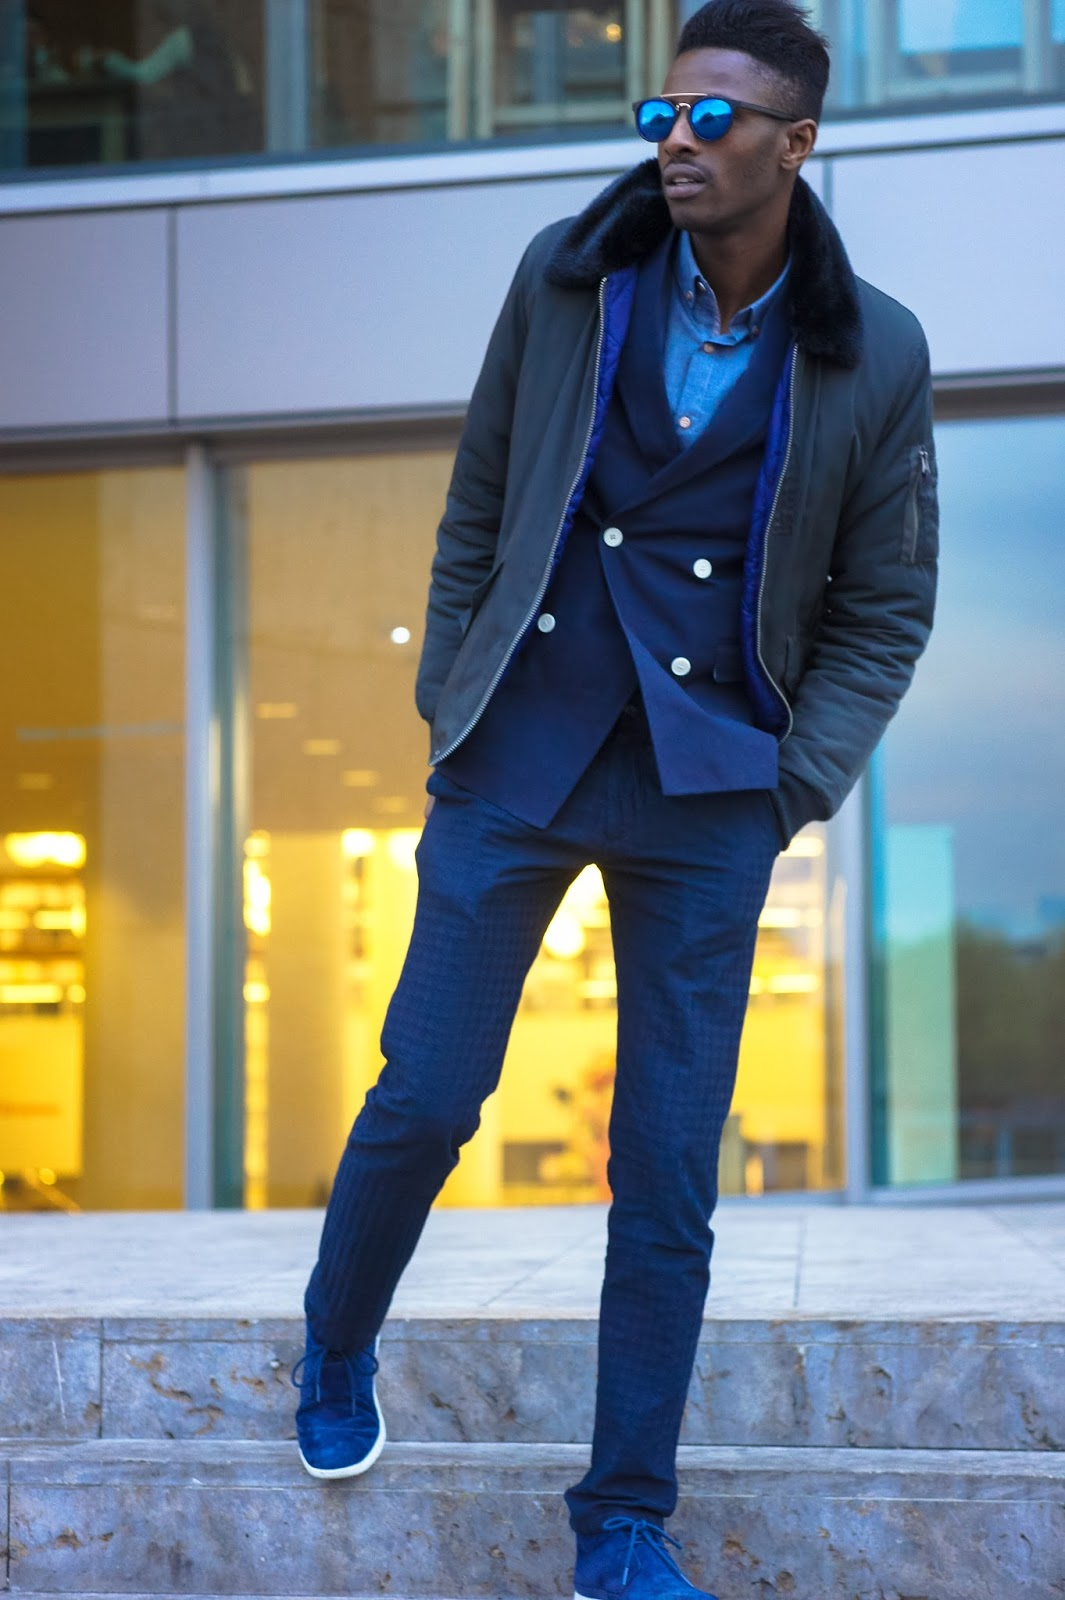 jonthegold blog x its true blog - navy blue looks style fashion as celebration for nationale dag van de communicatie in amsterdam near vapiano central station - ugg sneakers zara pants h&m blazer crisitano native youth coat ronaldo cr7 menswear fashion bloggers united